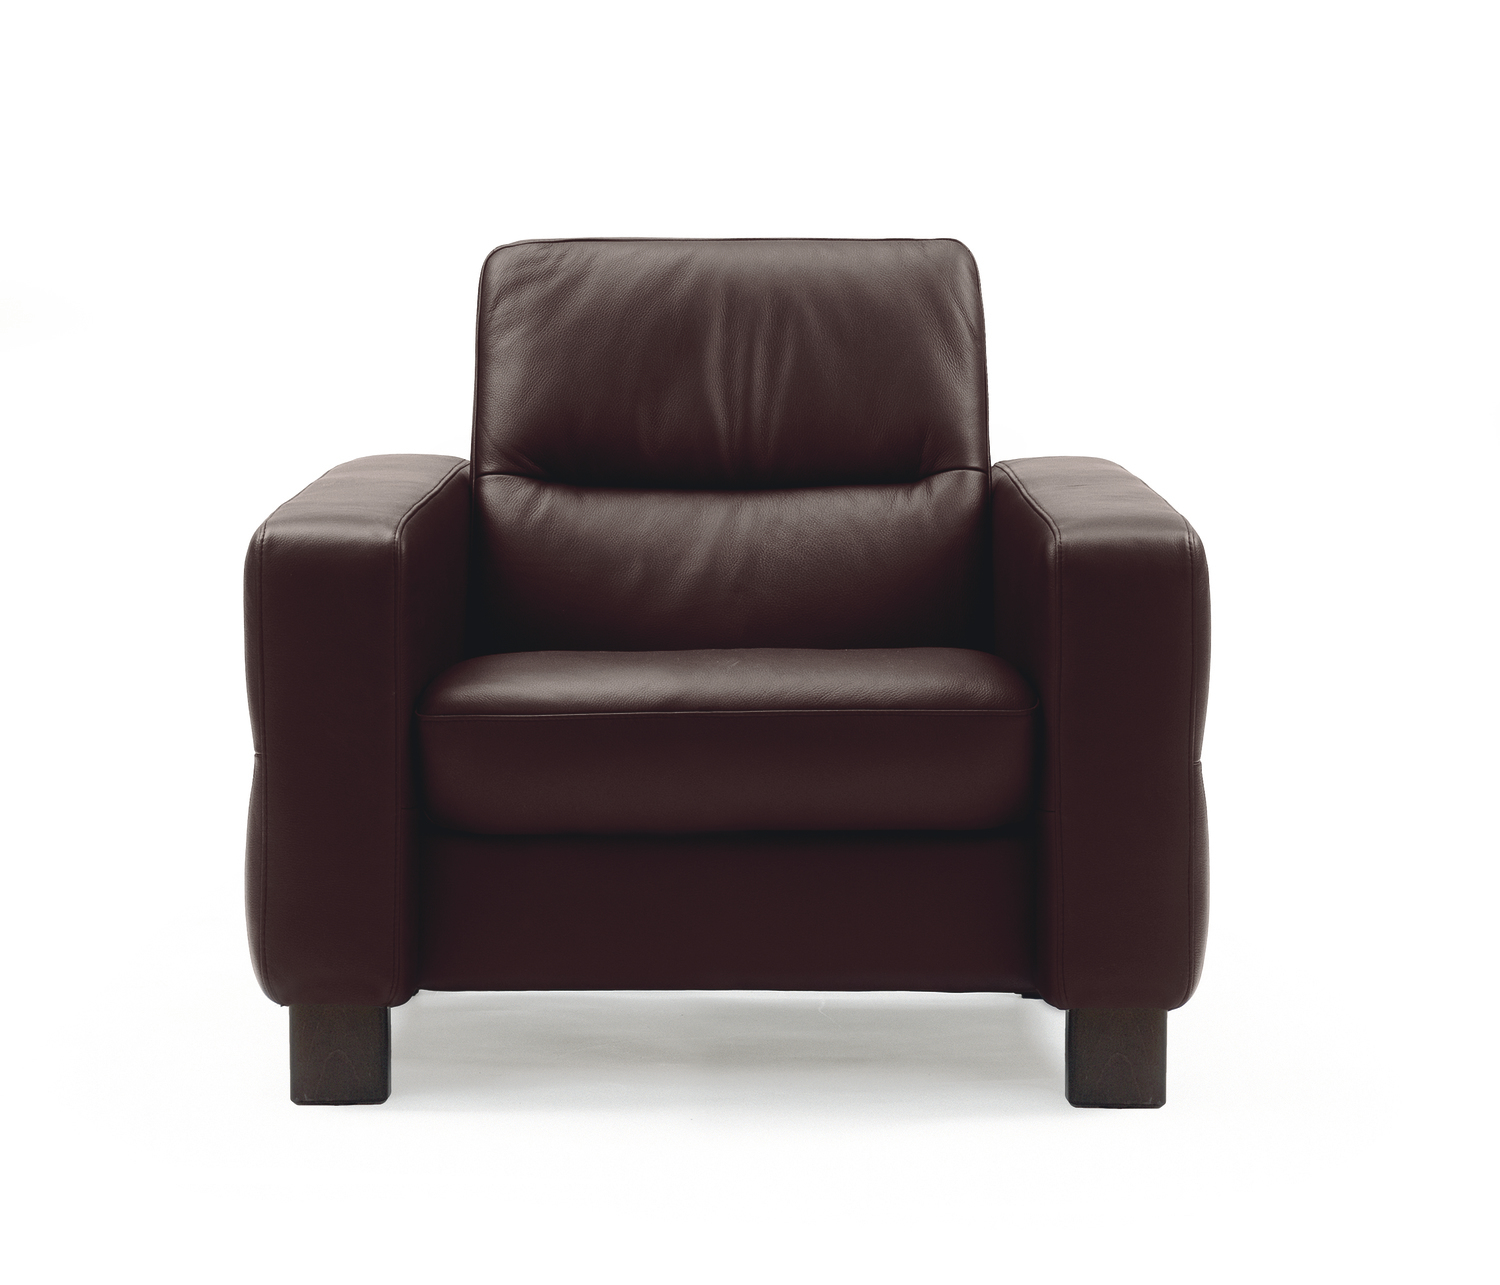 Ekornes Stressless 1184010stressless By Ekornes Stressless Wave Chair Low Back